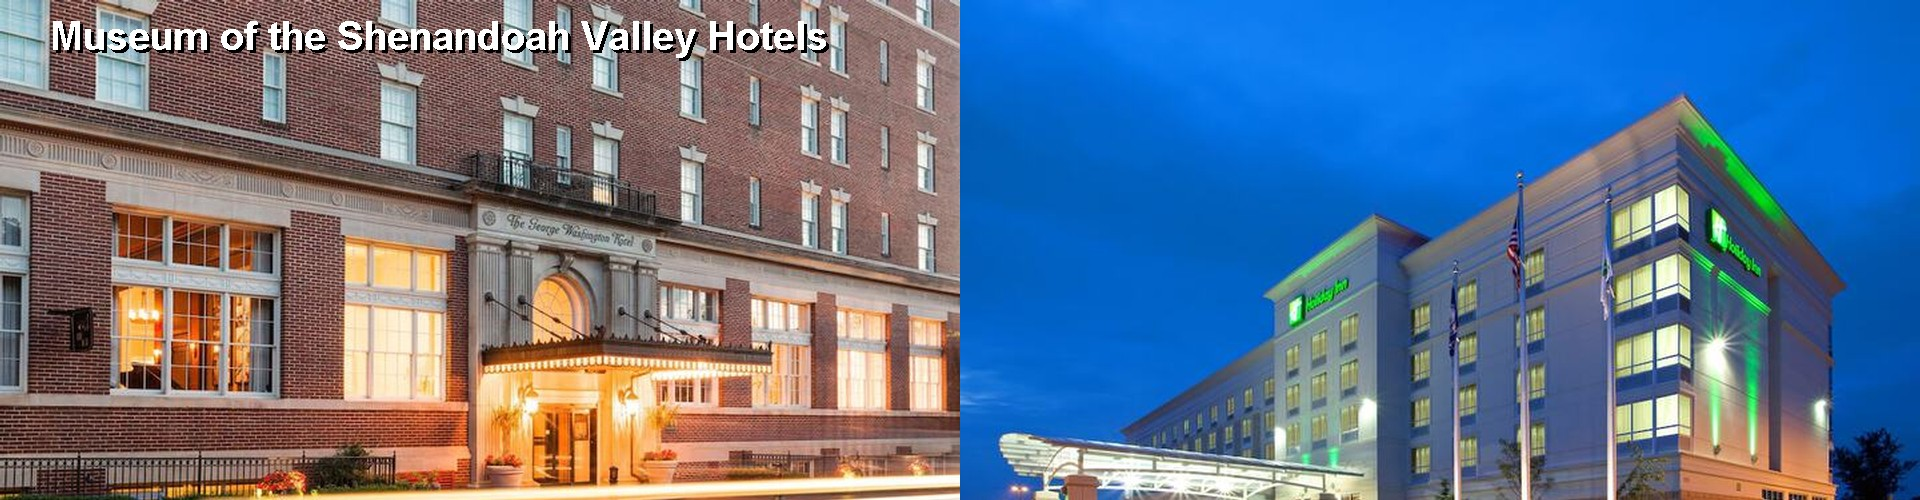 5 Best Hotels near Museum of the Shenandoah Valley